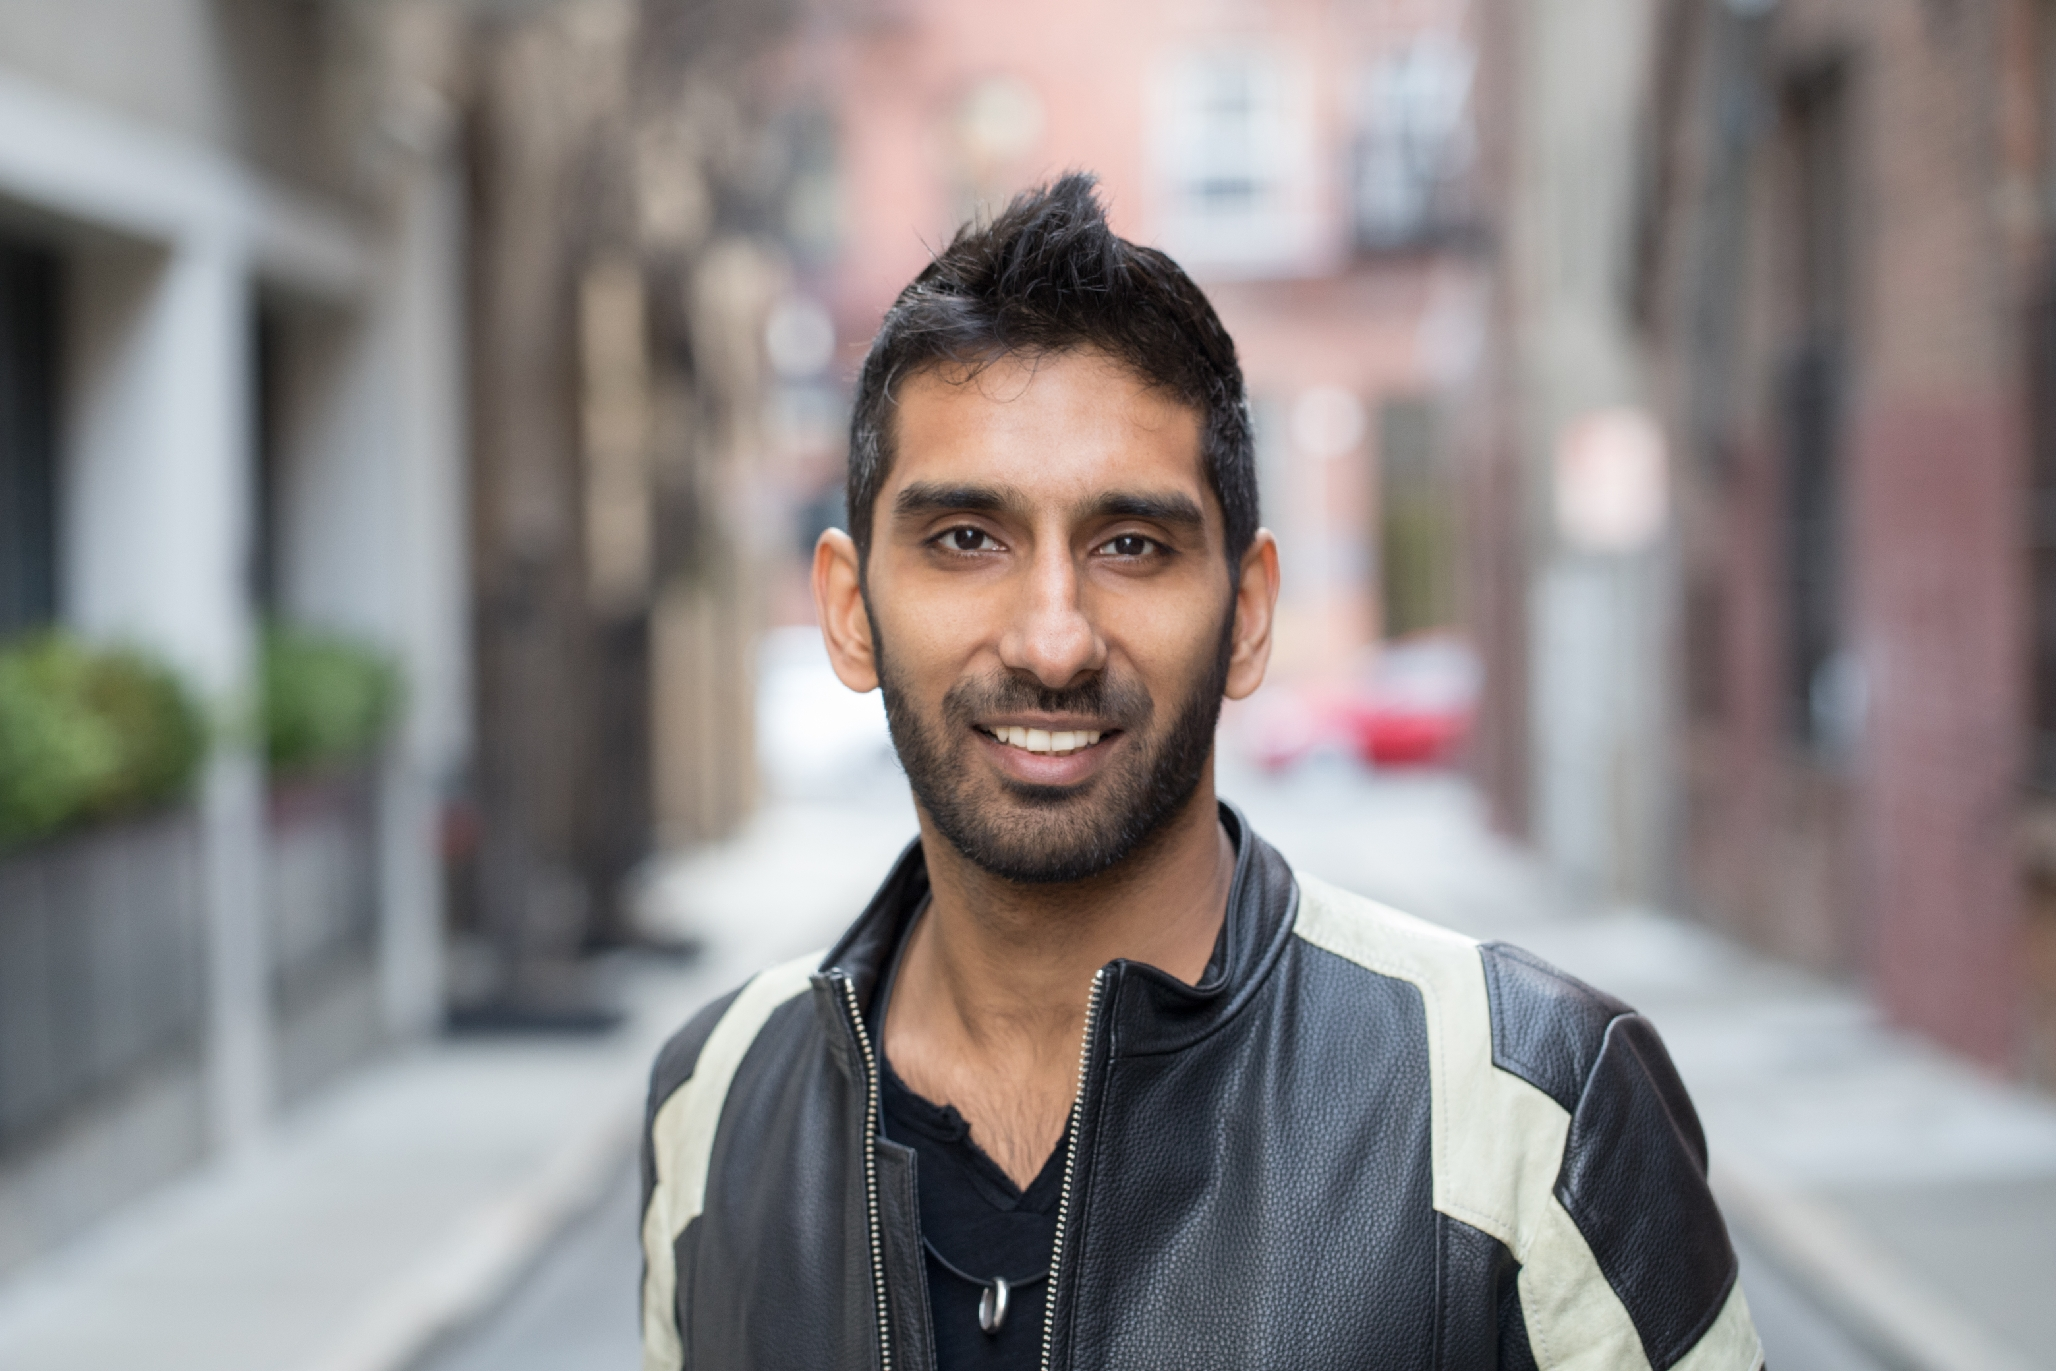 Superhuman founder and CEO Rahul Vohra